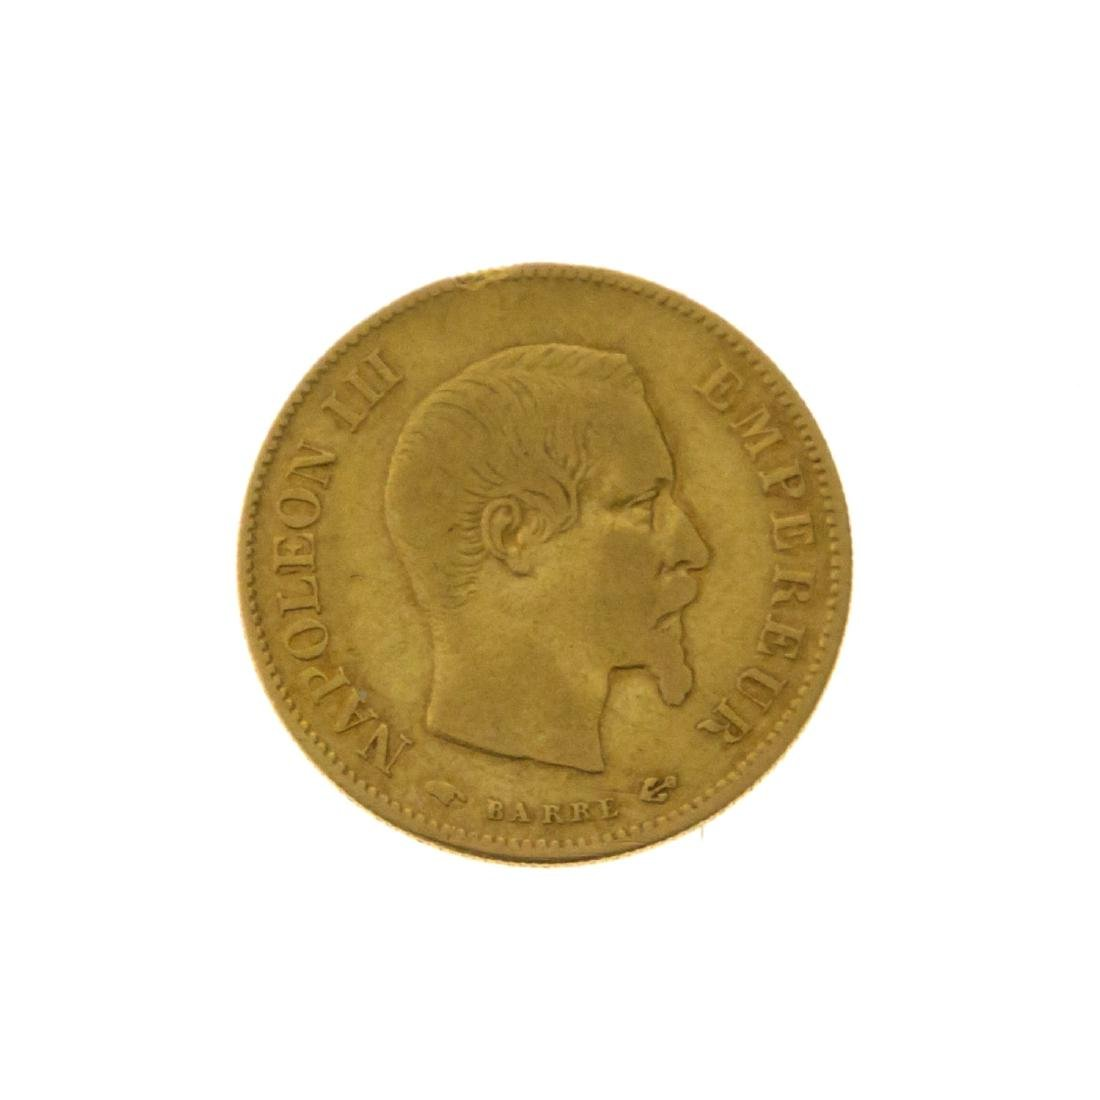 Napoleon III 10 French Francs Gold Coin, 1858 A.